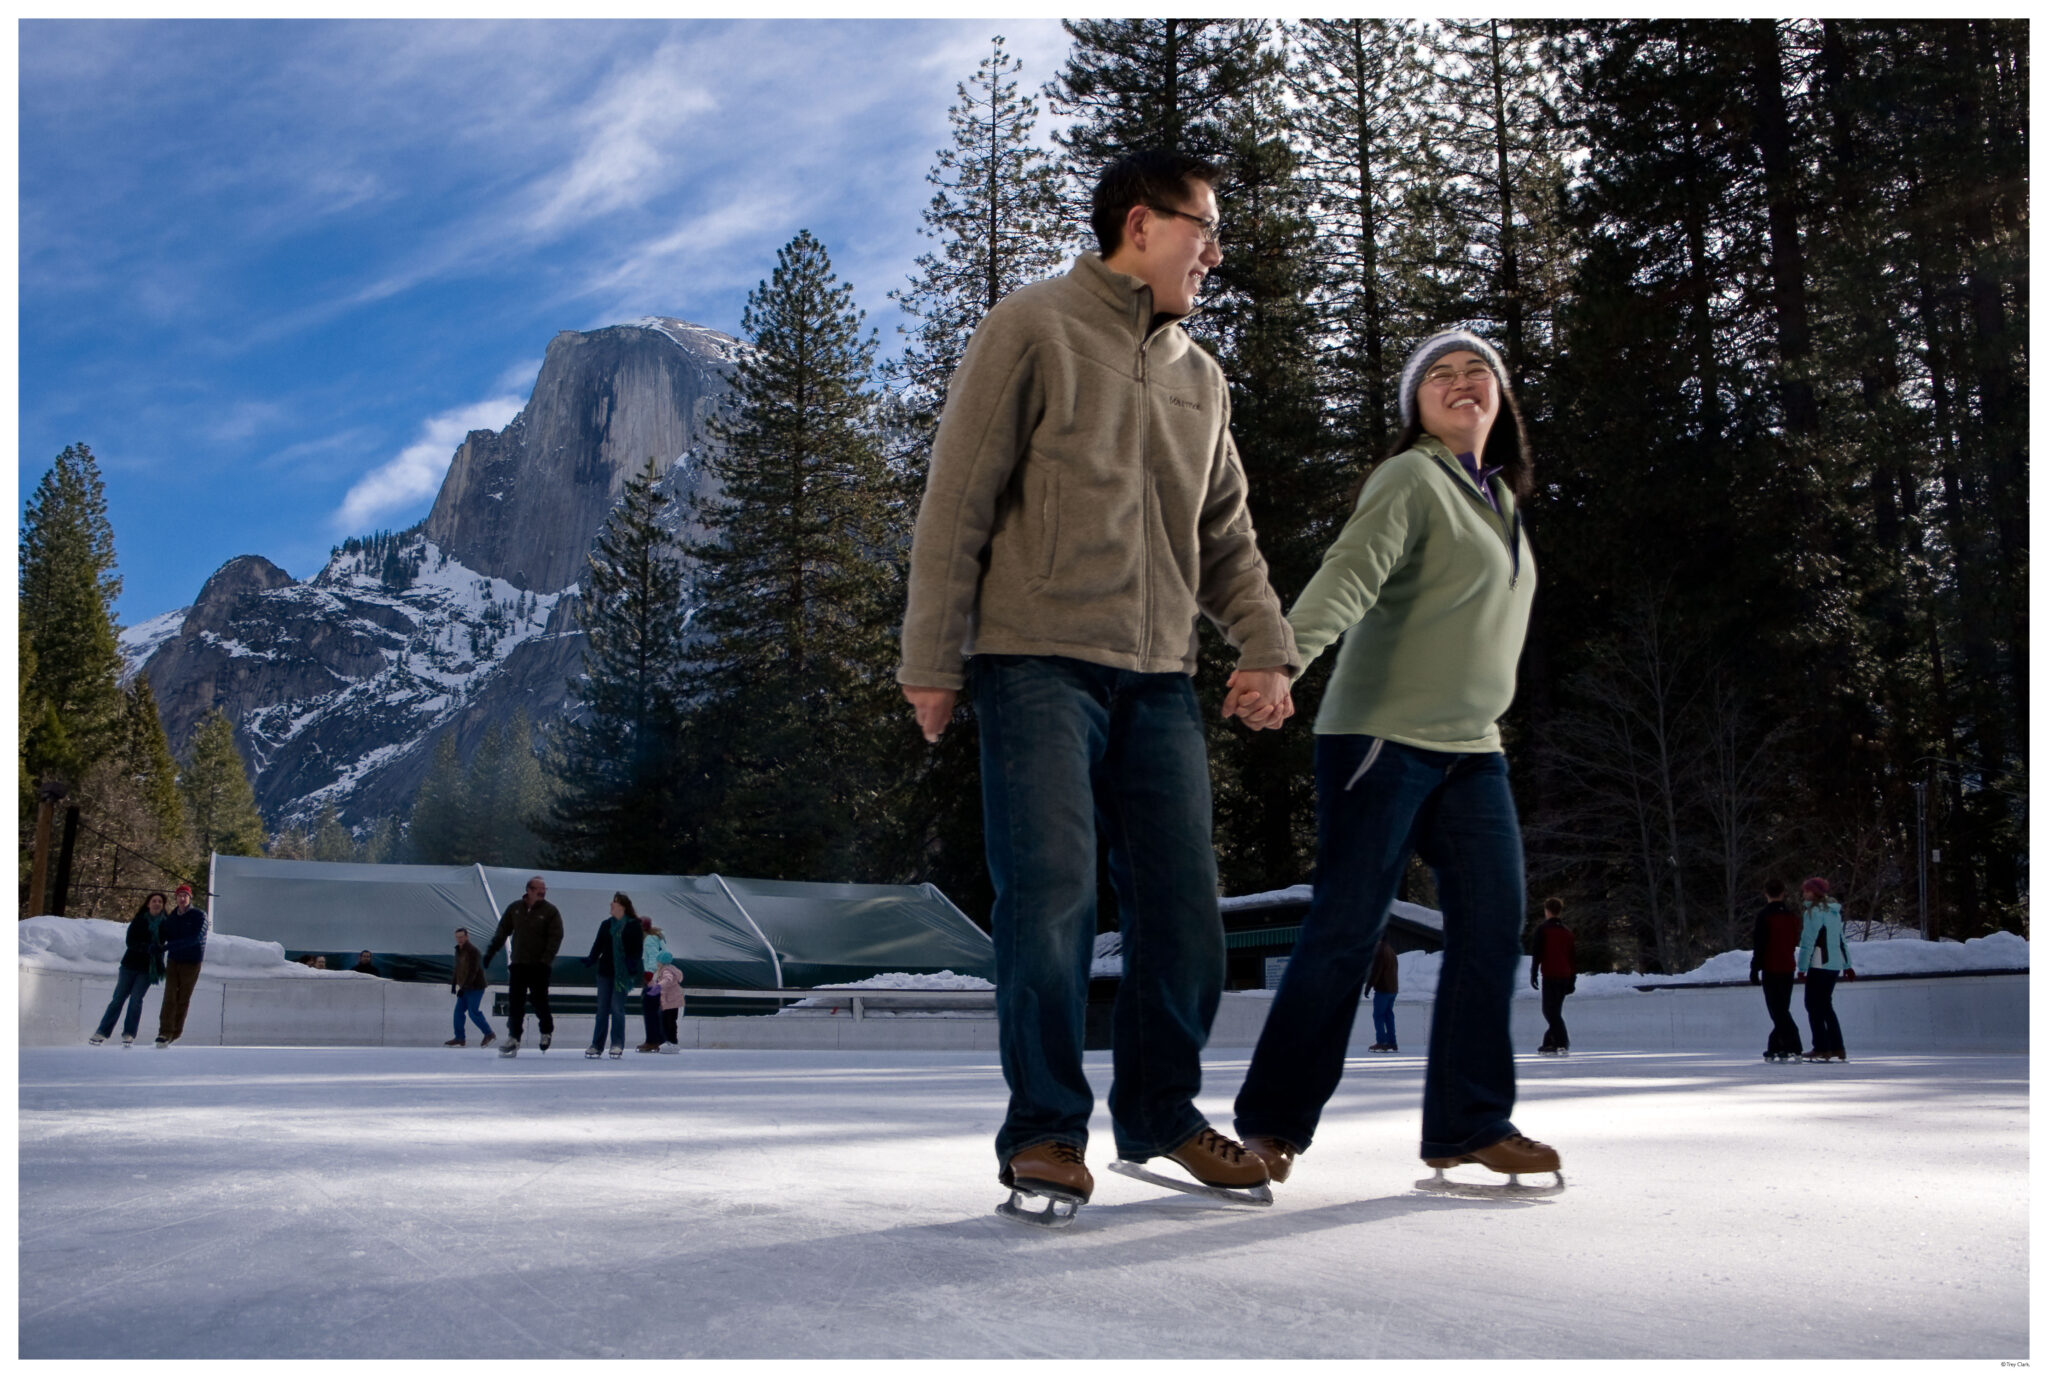 Dating ice skaters